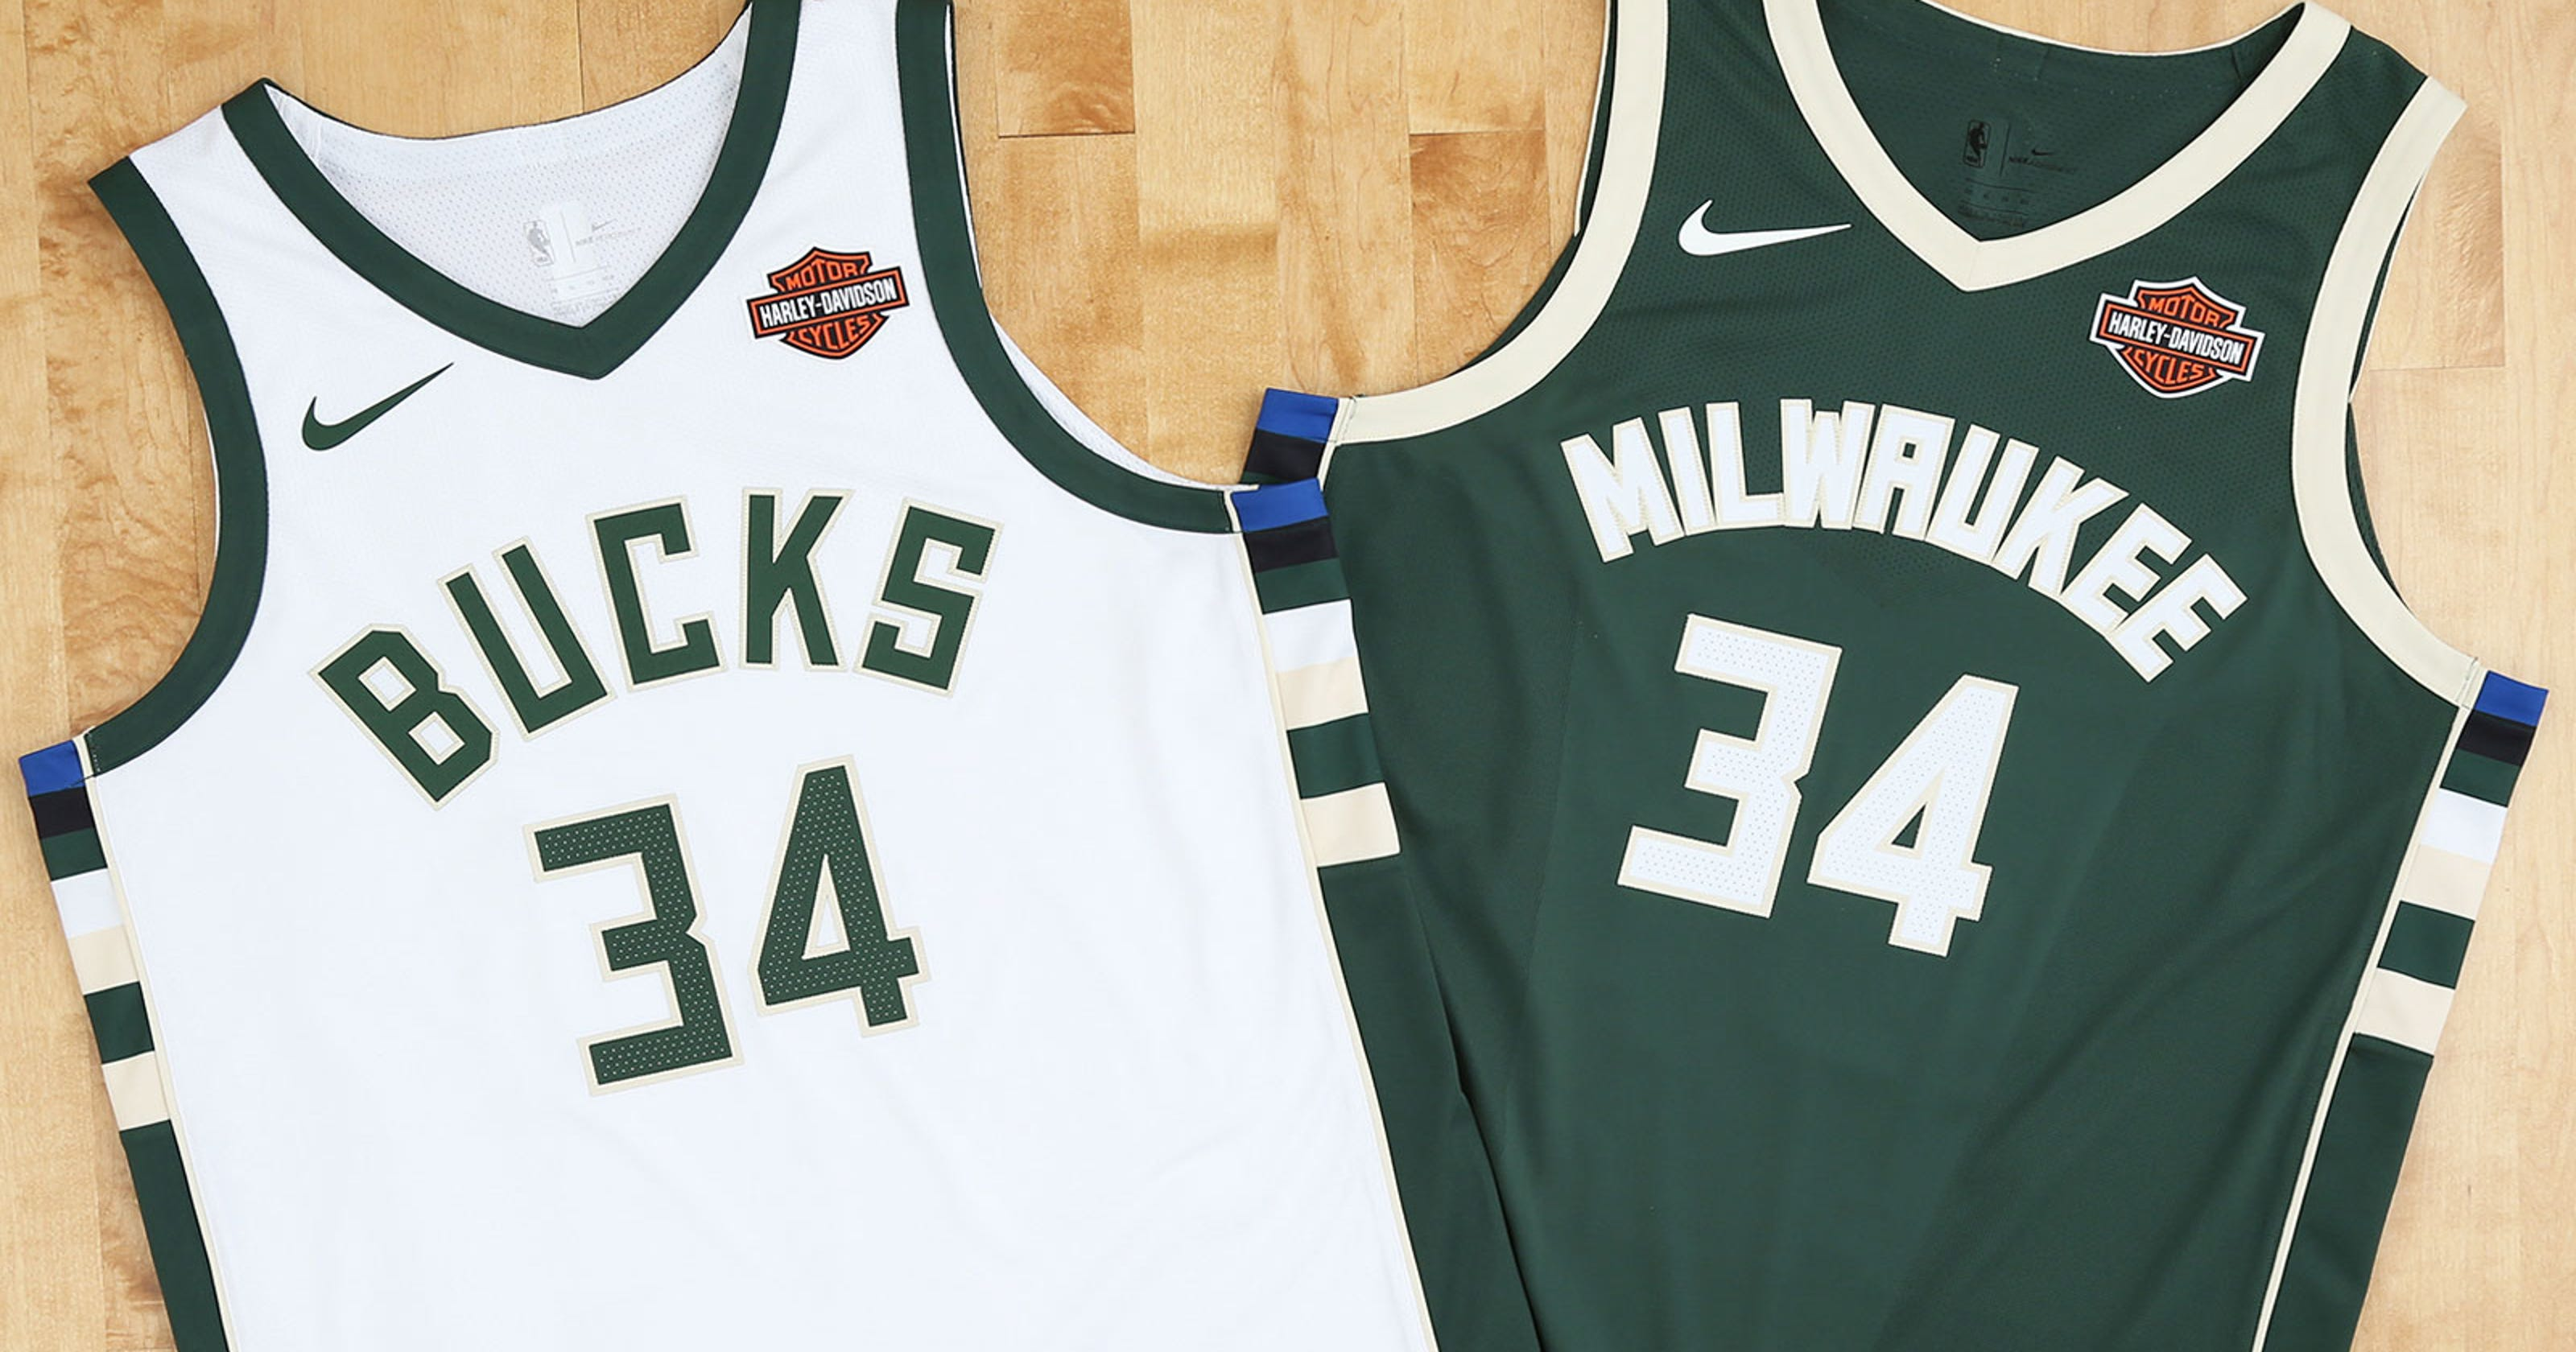 6f2cd5c6da8 Milwaukee Bucks game jerseys to feature Harley-Davidson advertising patch  starting in 2017- 18